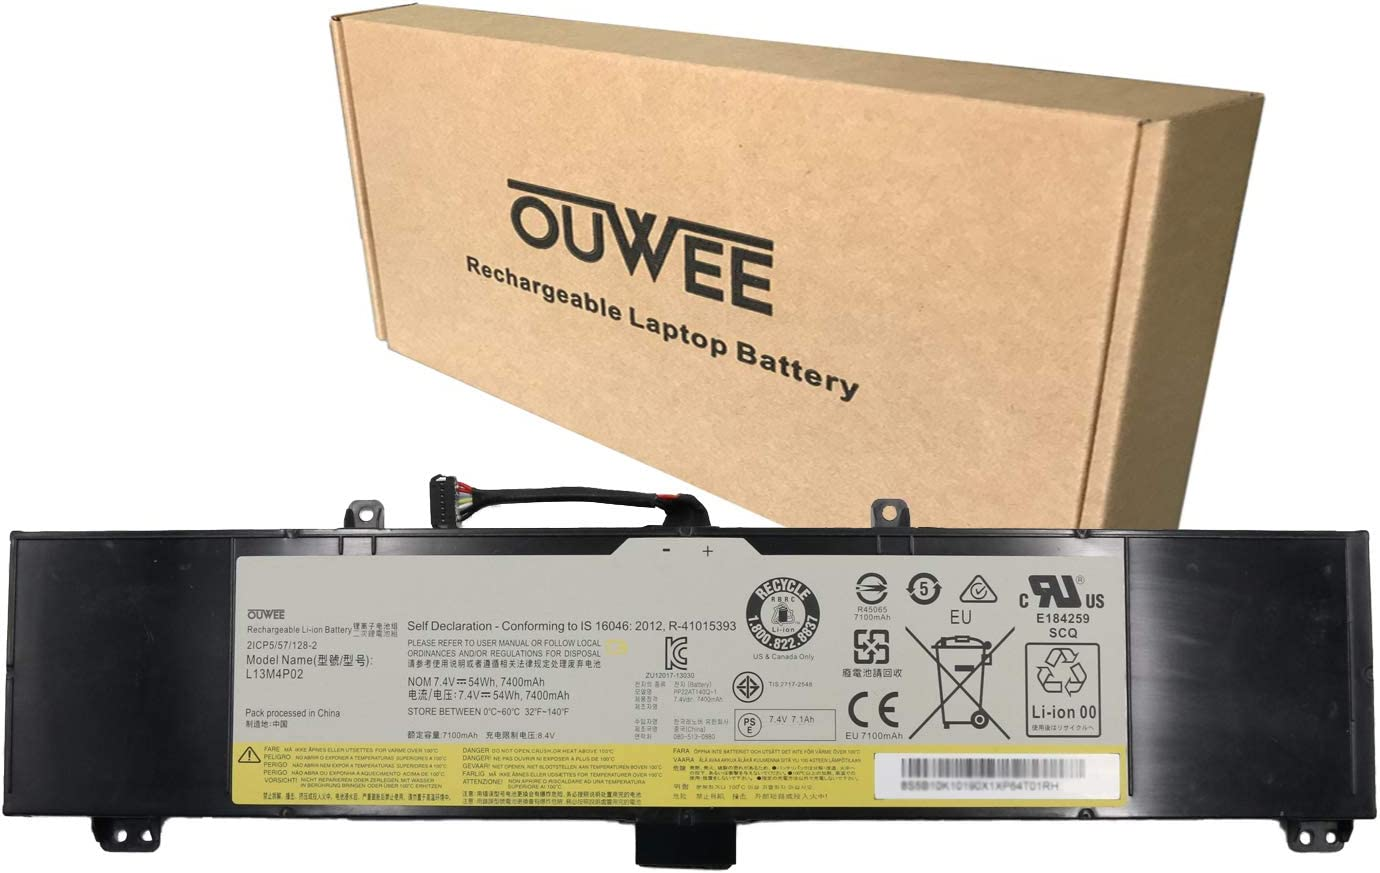 OUWEE L13M4P02 Laptop Battery Compatible with Lenovo Erazer Y50 Y50-70 Y50-80 Y50P Y50P-70 Y70 Y70-70 Series Notebook L13N4P01 121500250 121500251 5B10K10190 7.4V 54Wh 7400mAh